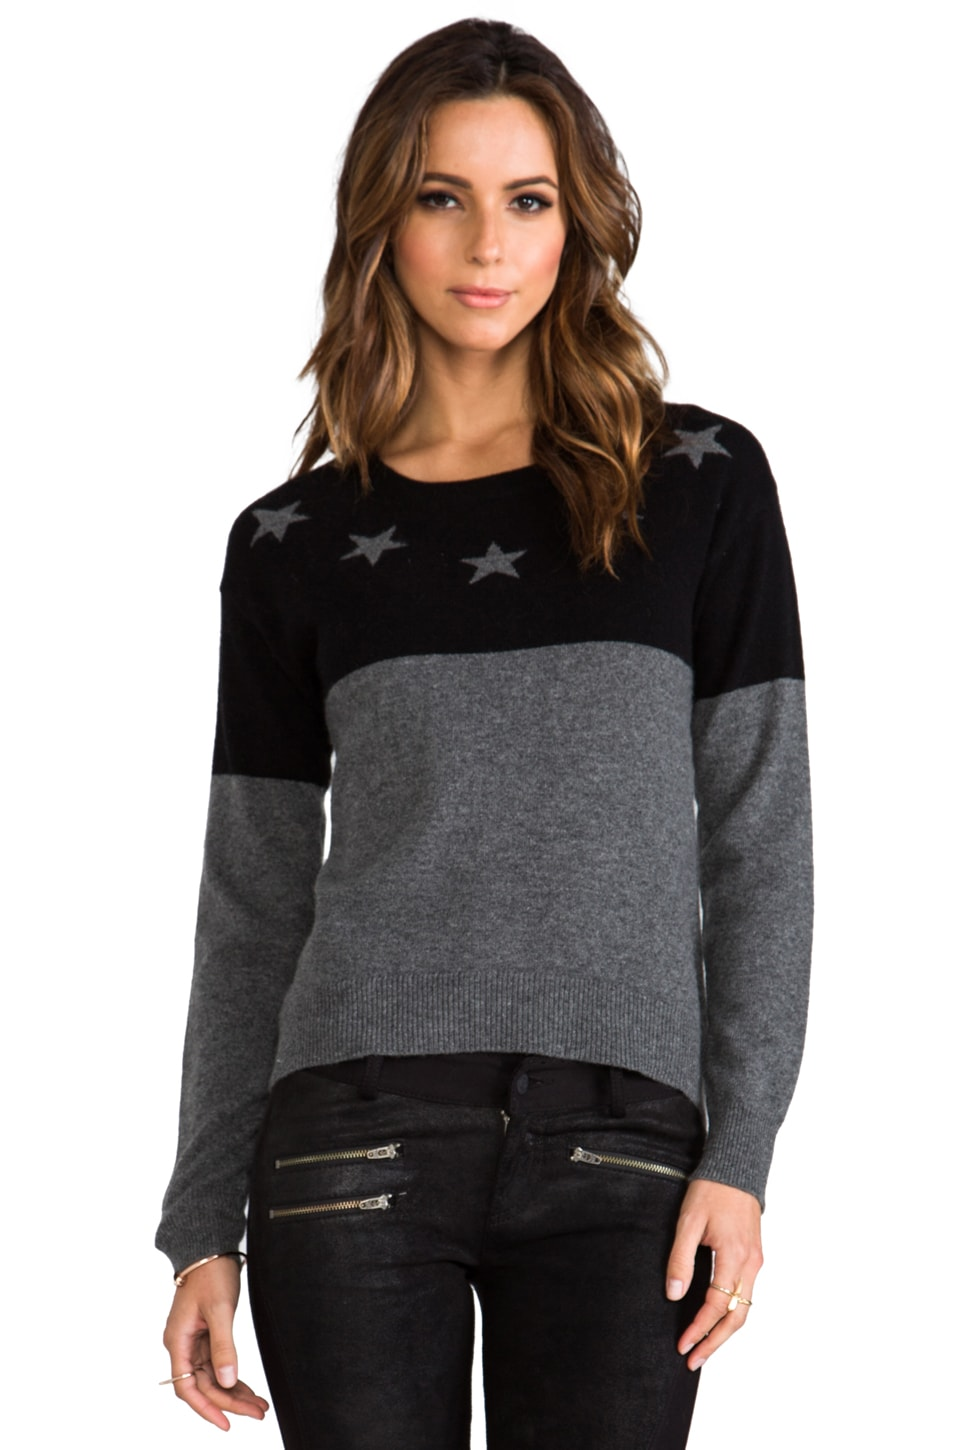 291 Cashmere Neck Star Uneven Hem Sweater in Black